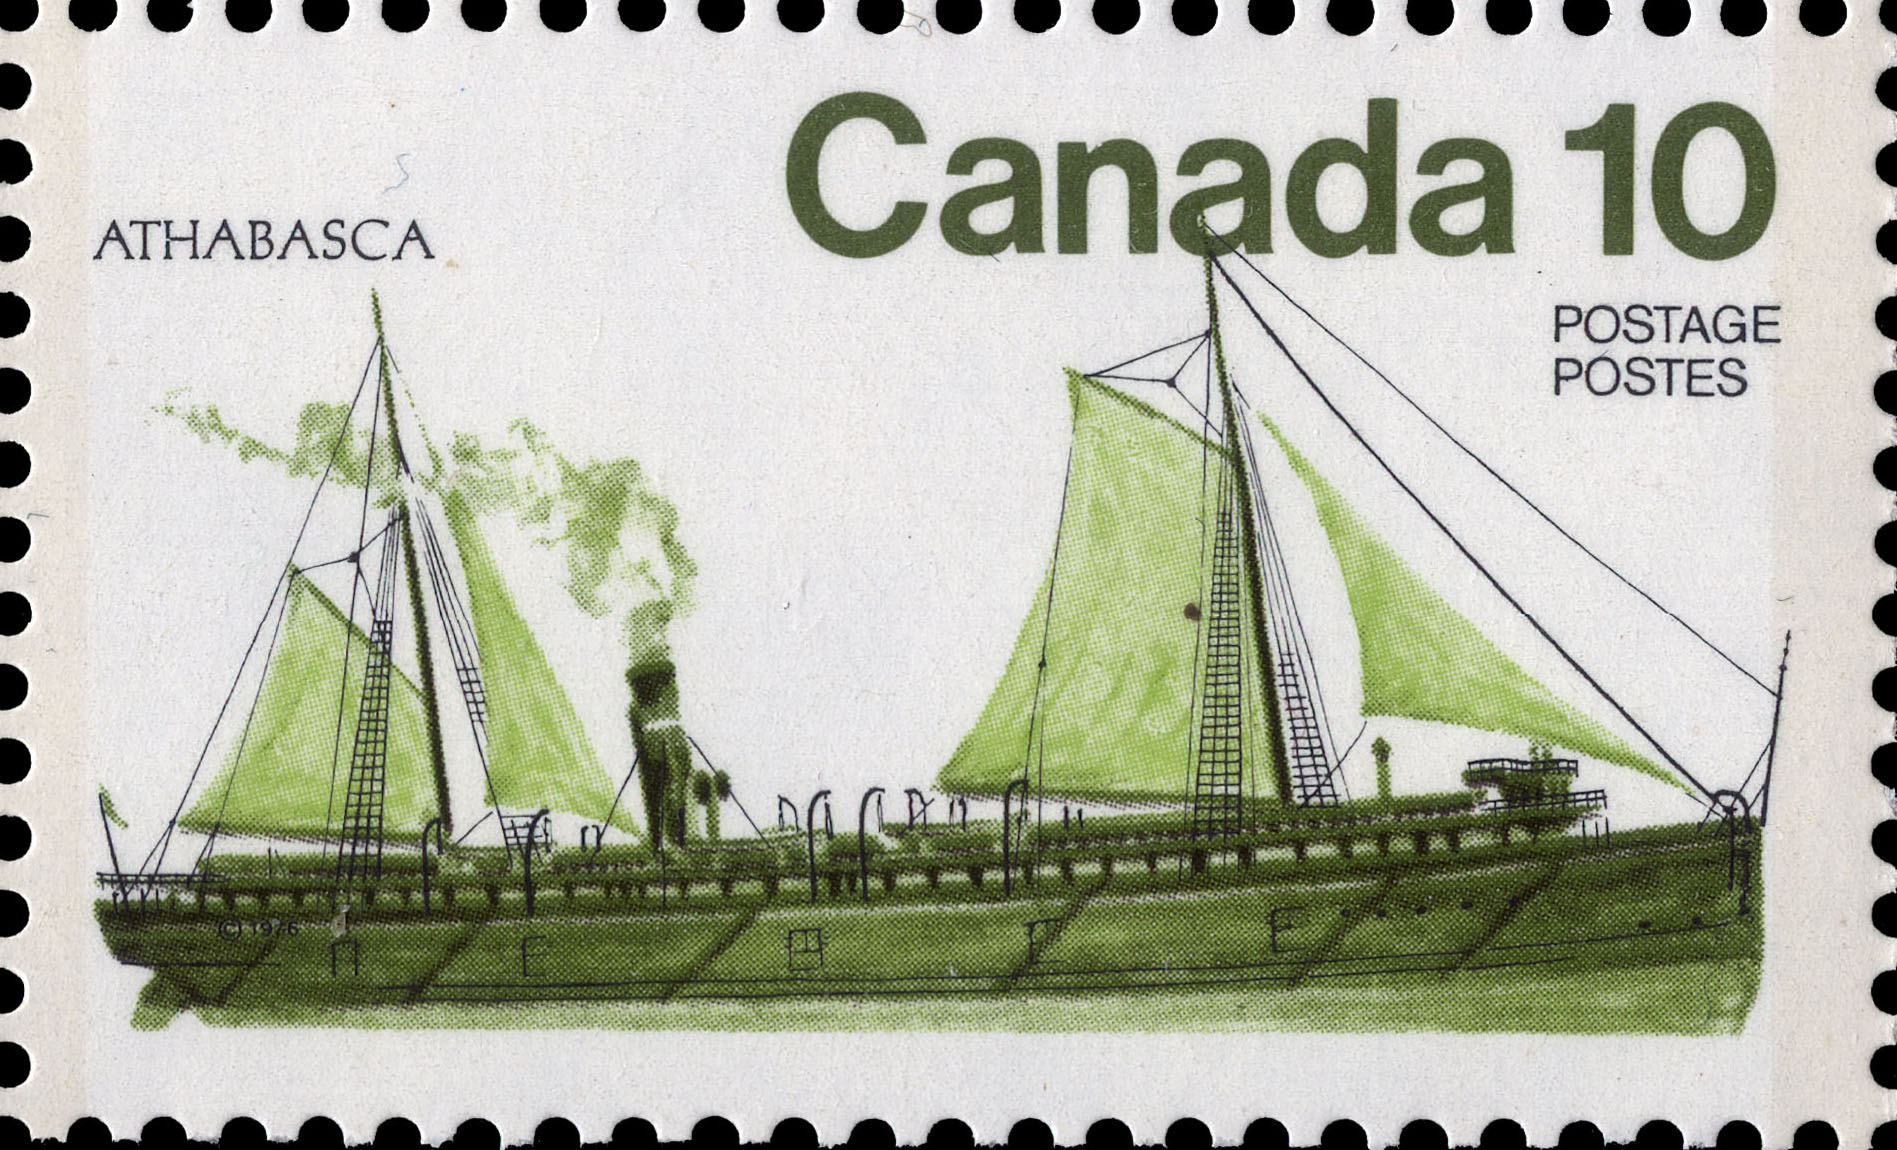 Athabasca Canada Postage Stamp | Ships of Canada, Inland Vessels